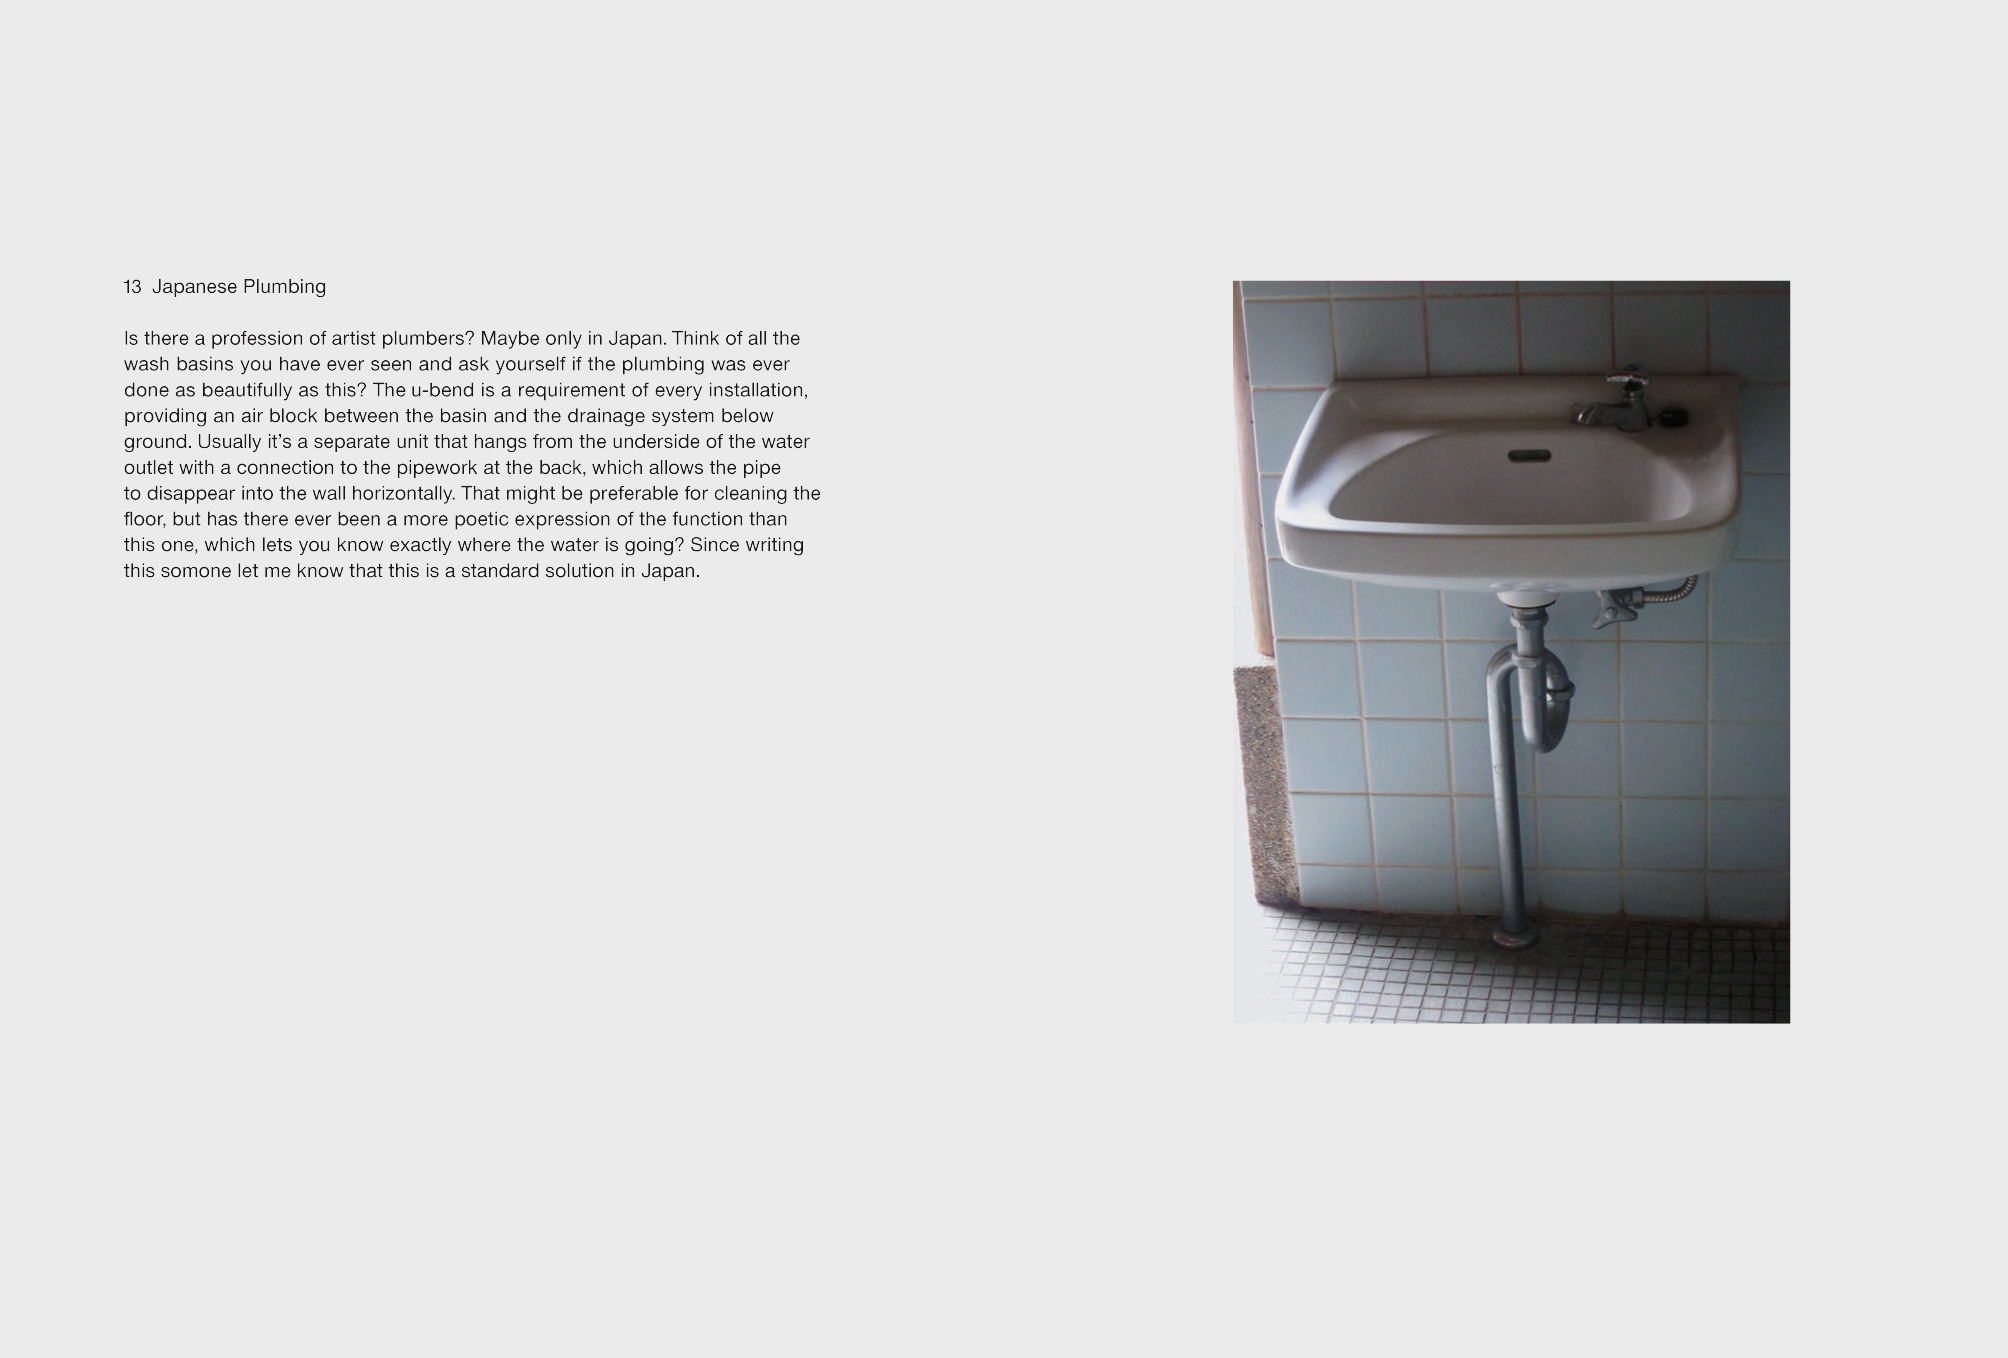 Japanese Plumbing Copyright@Jasper Morrison, The Good Life, Lars Müller Publishers, 2014